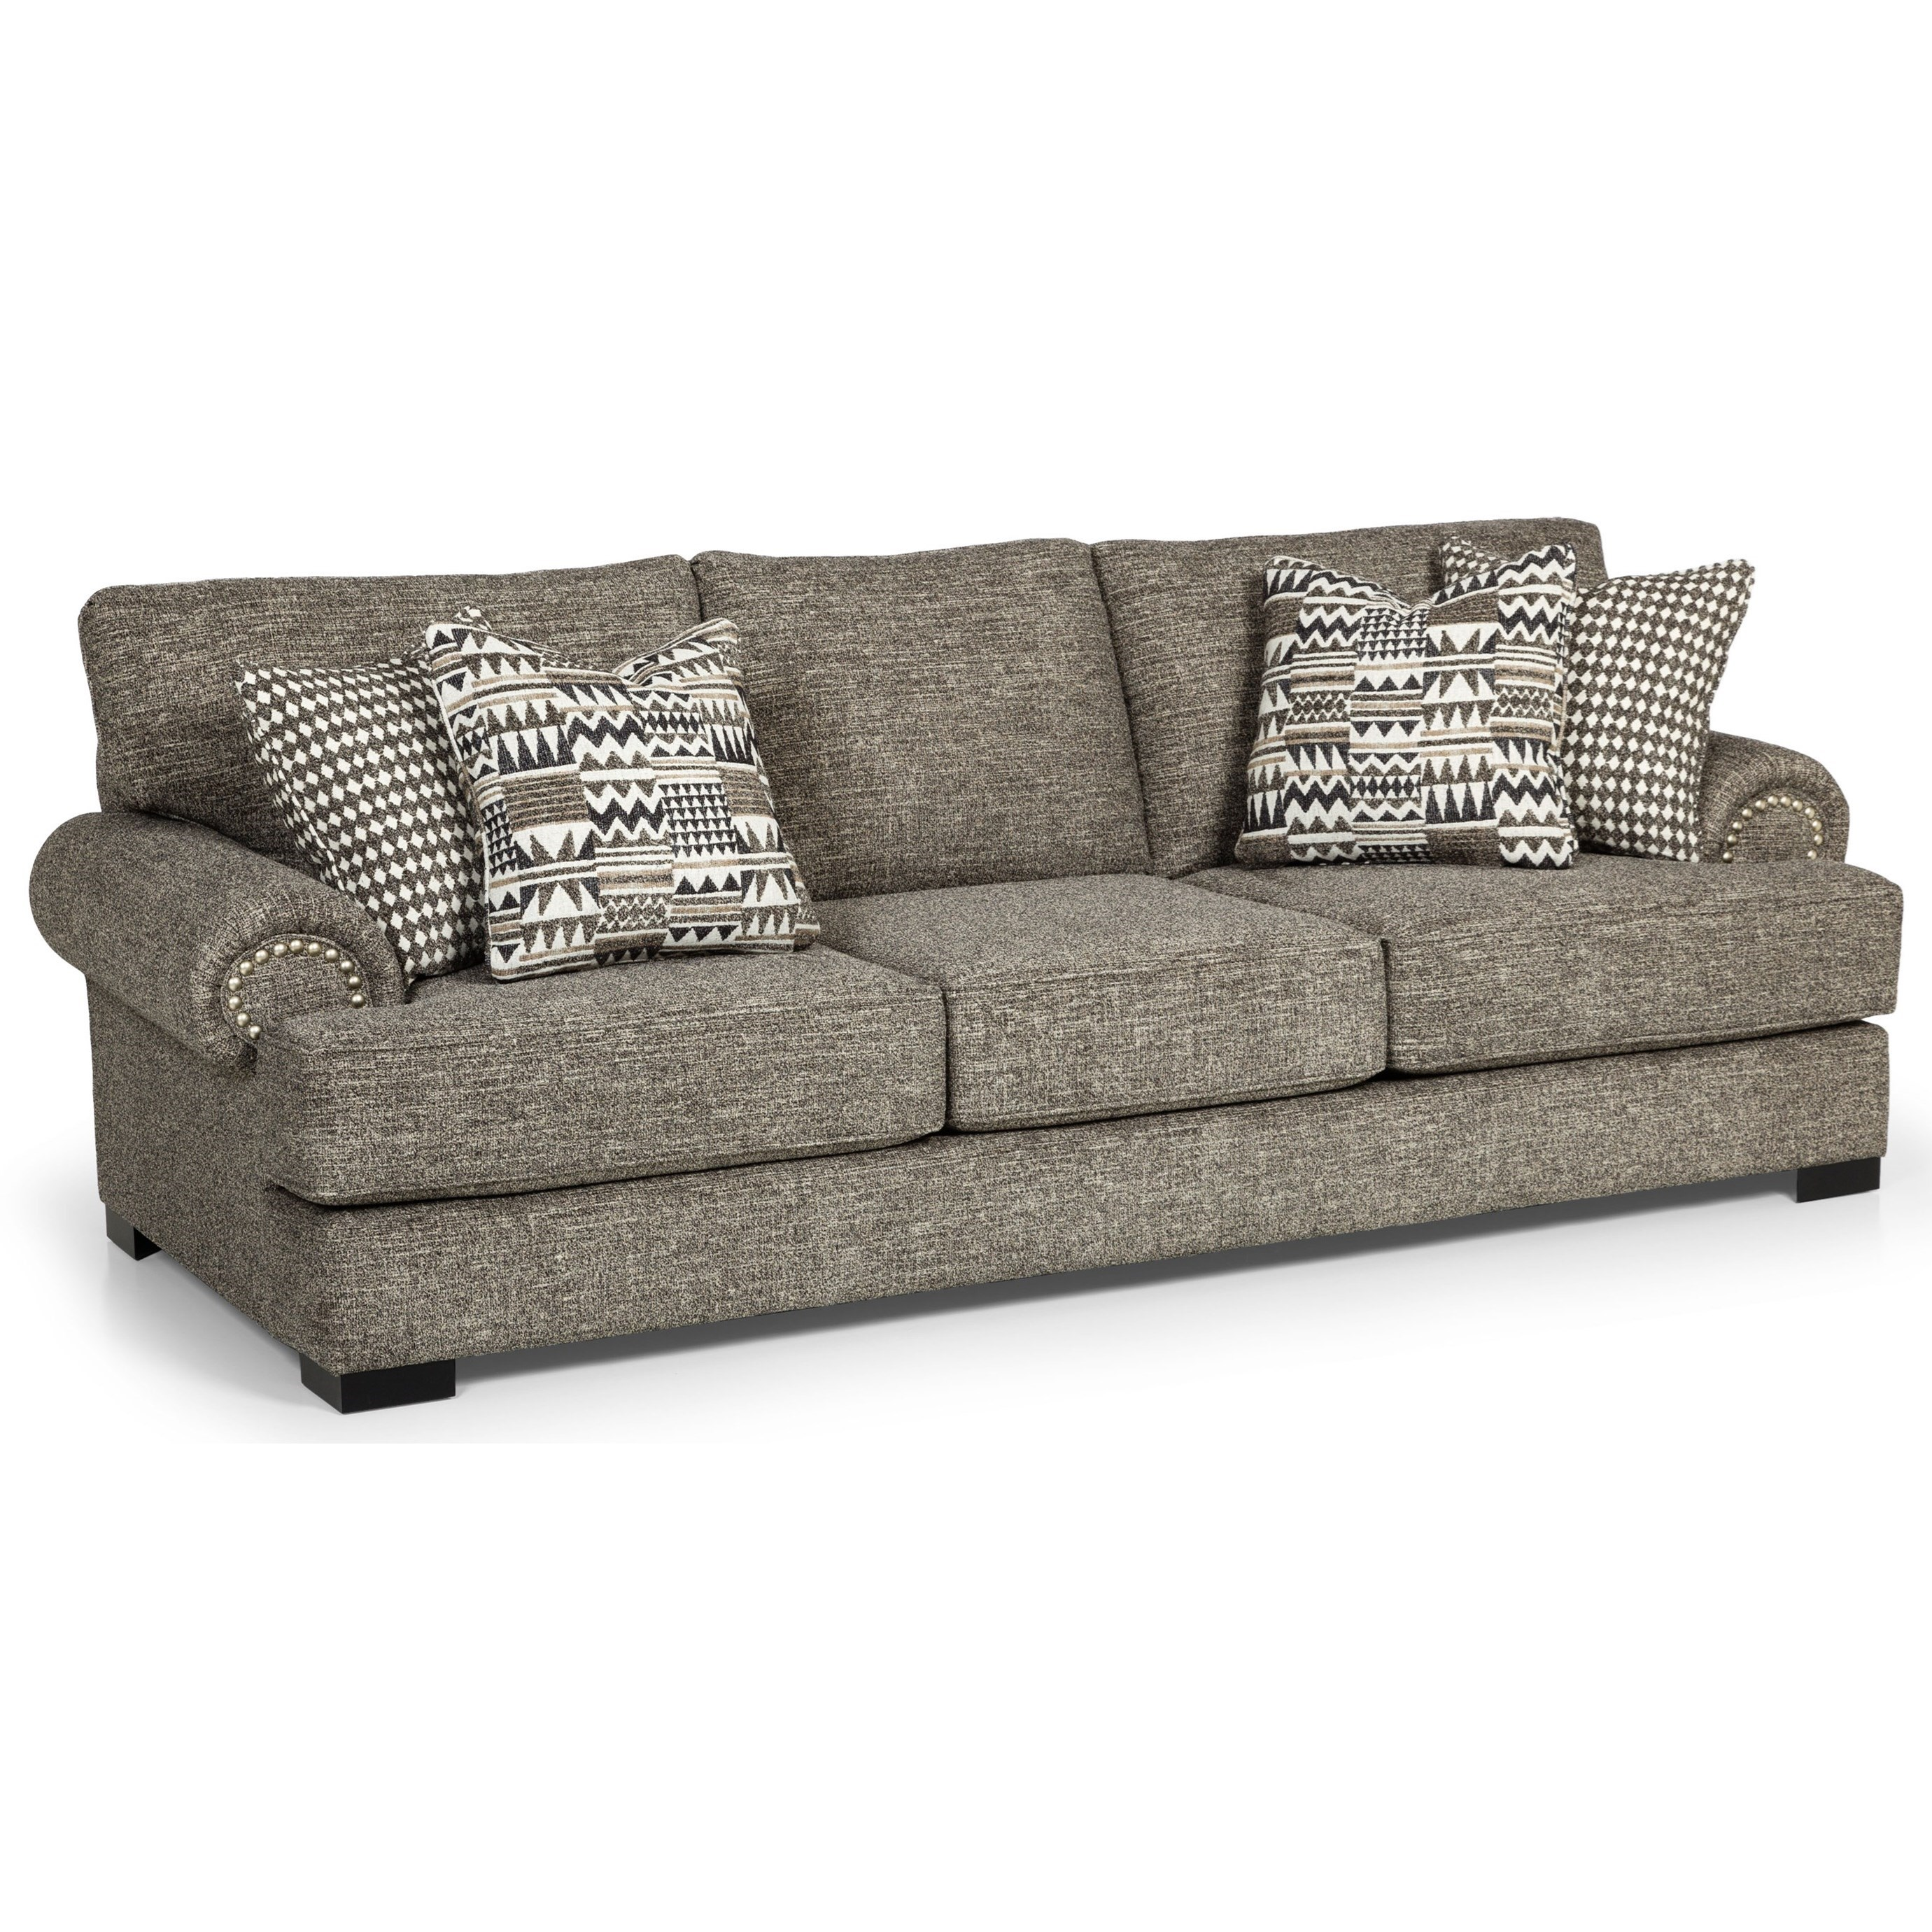 290 Large Sofa by Stanton at Wilson's Furniture